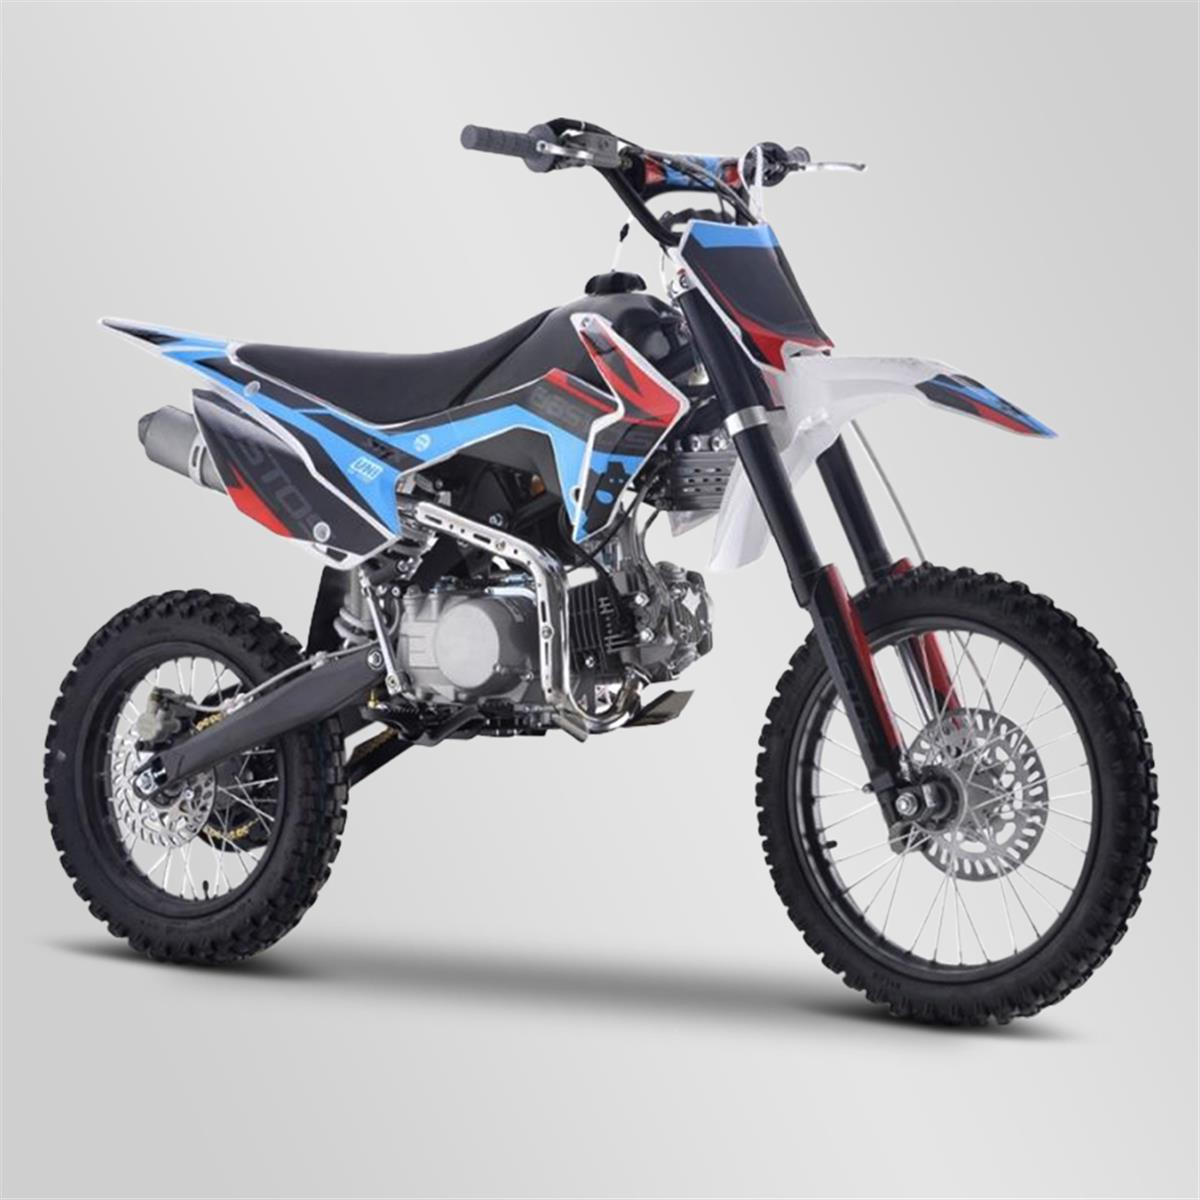 dirt-bike-bastos-bs-125cc-12-14-2020